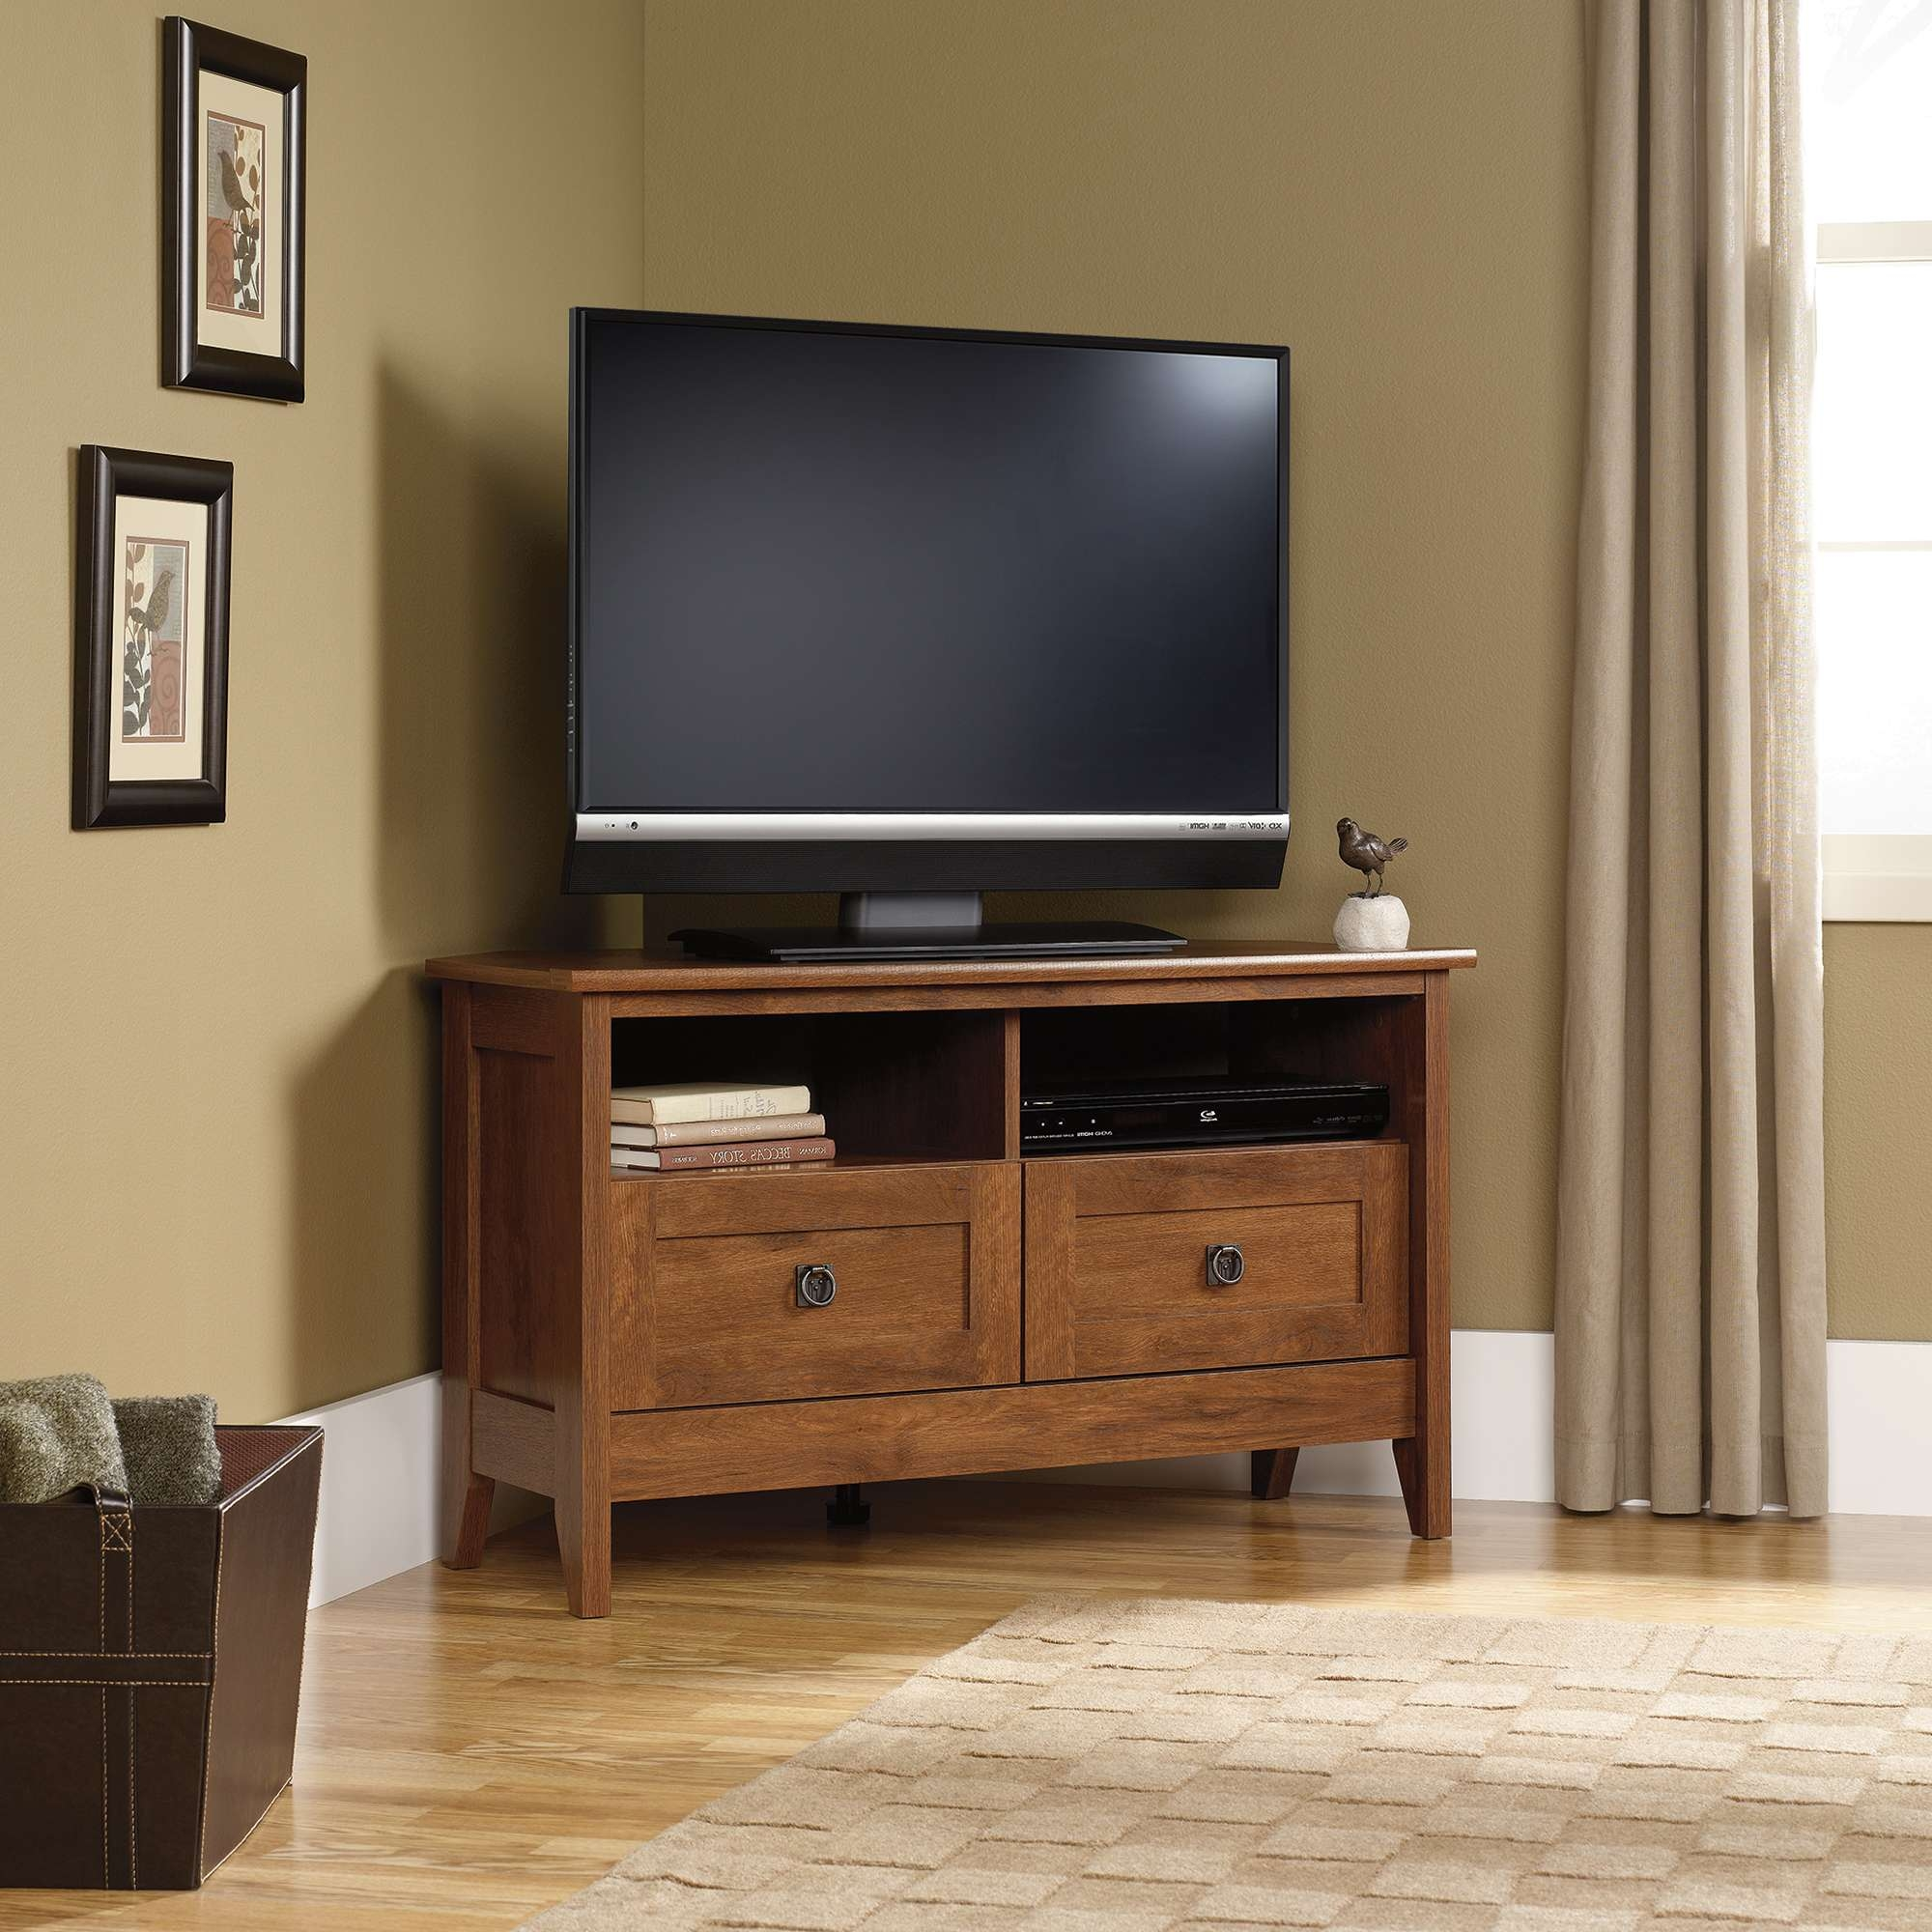 Sauder Select | Corner Tv Stand | 410627 | Sauder With Regard To Tv Cabinets (View 13 of 20)